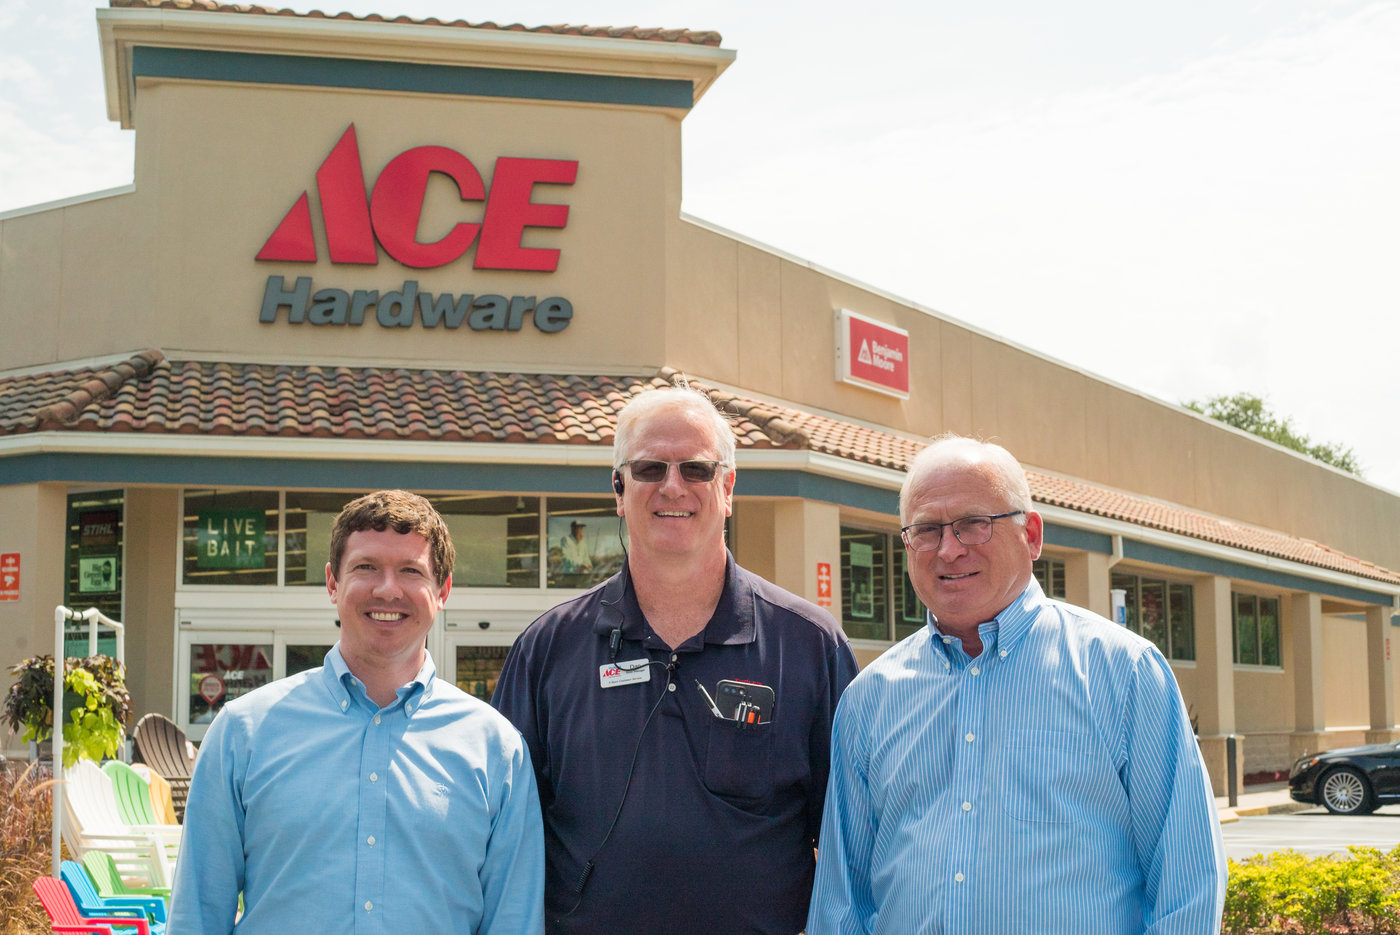 University Ace Hardware is led by (left to right): General Manager Neil Asma, Manager Dan Tanner and Owner Walter Toole.